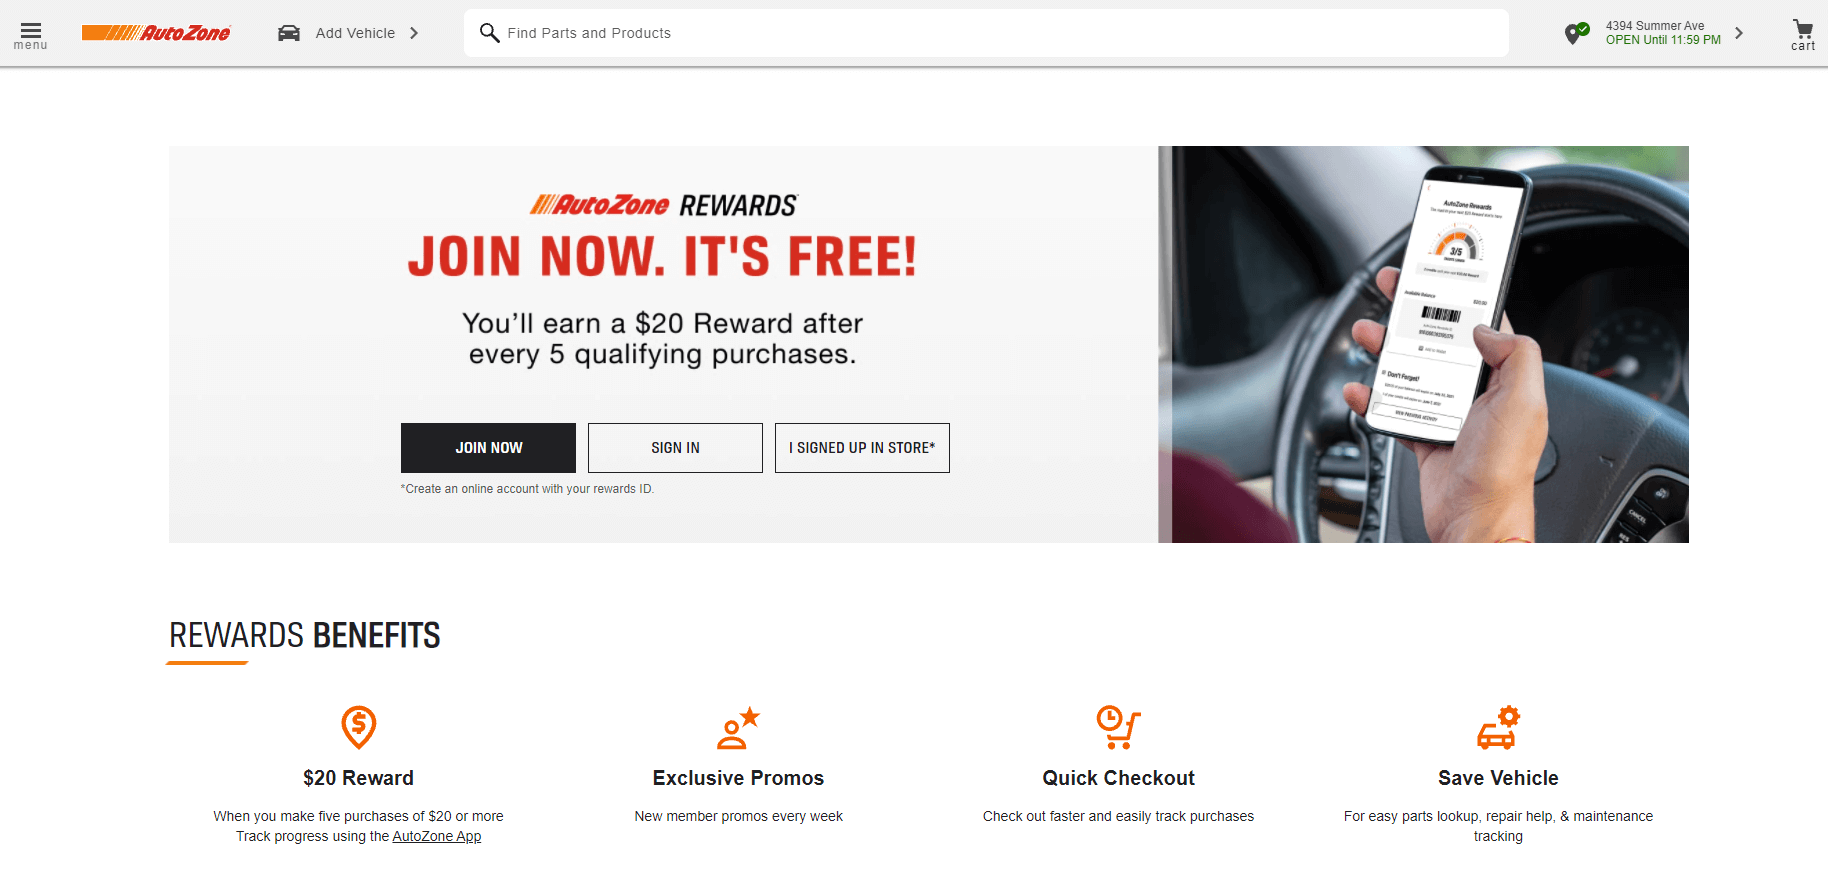 Members can sign up for the loyalty program immediately upon accessing the AutoZone's main page.